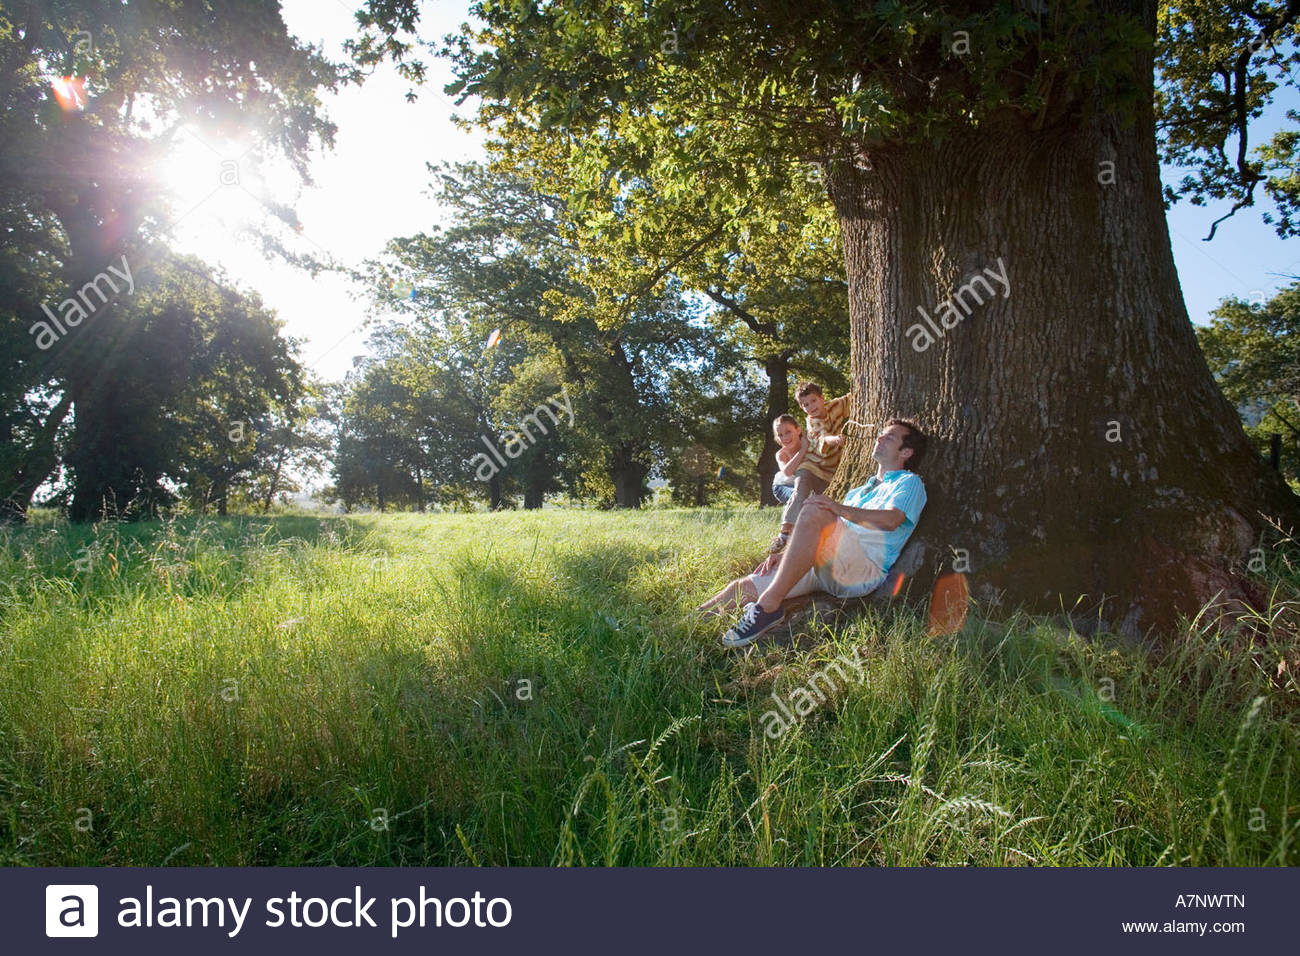 Man resting against tree mischievous son 8 10 tickling father s ear with stick girl 7 9 looking on lens flare - Stock Image